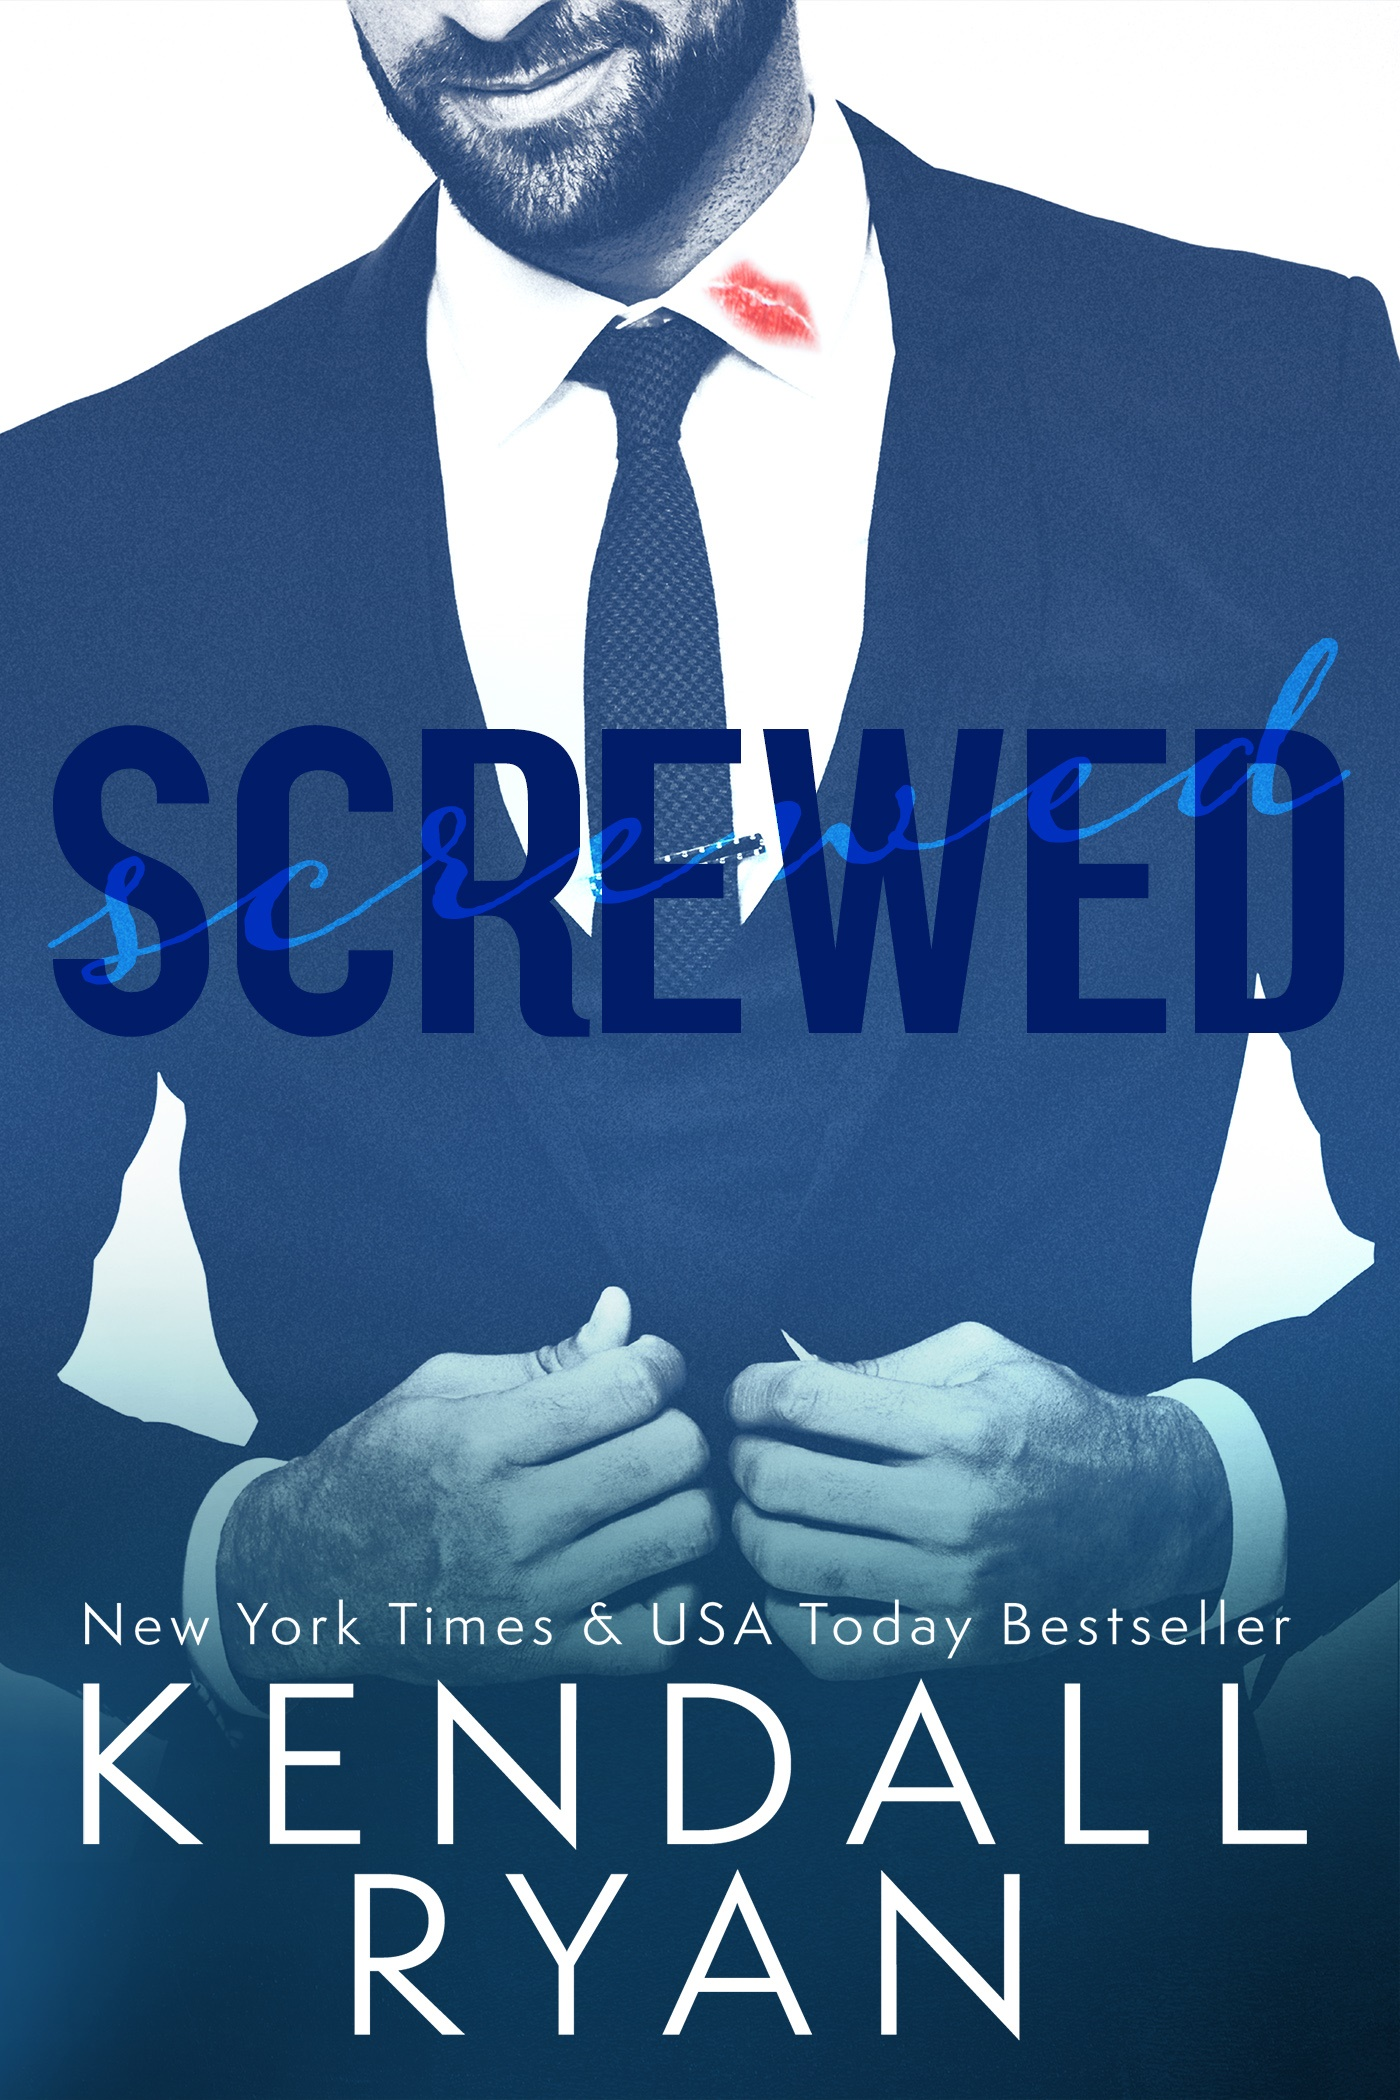 Como Descargar Libros En Goodreads Screwed Kendall Ryan